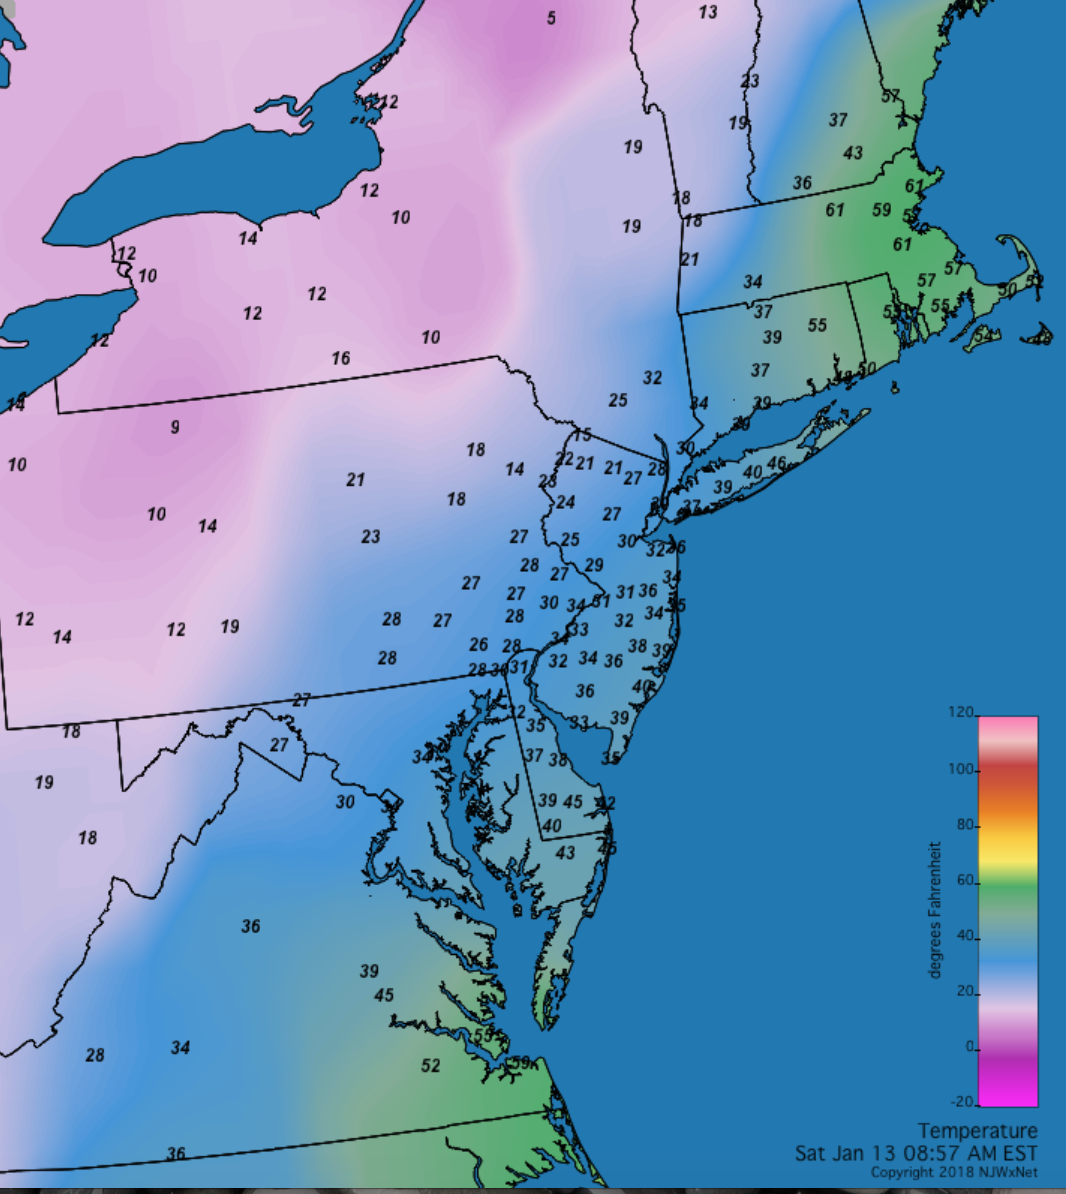 Mid-Atlantic temperatures at 8:57AM on January 13th